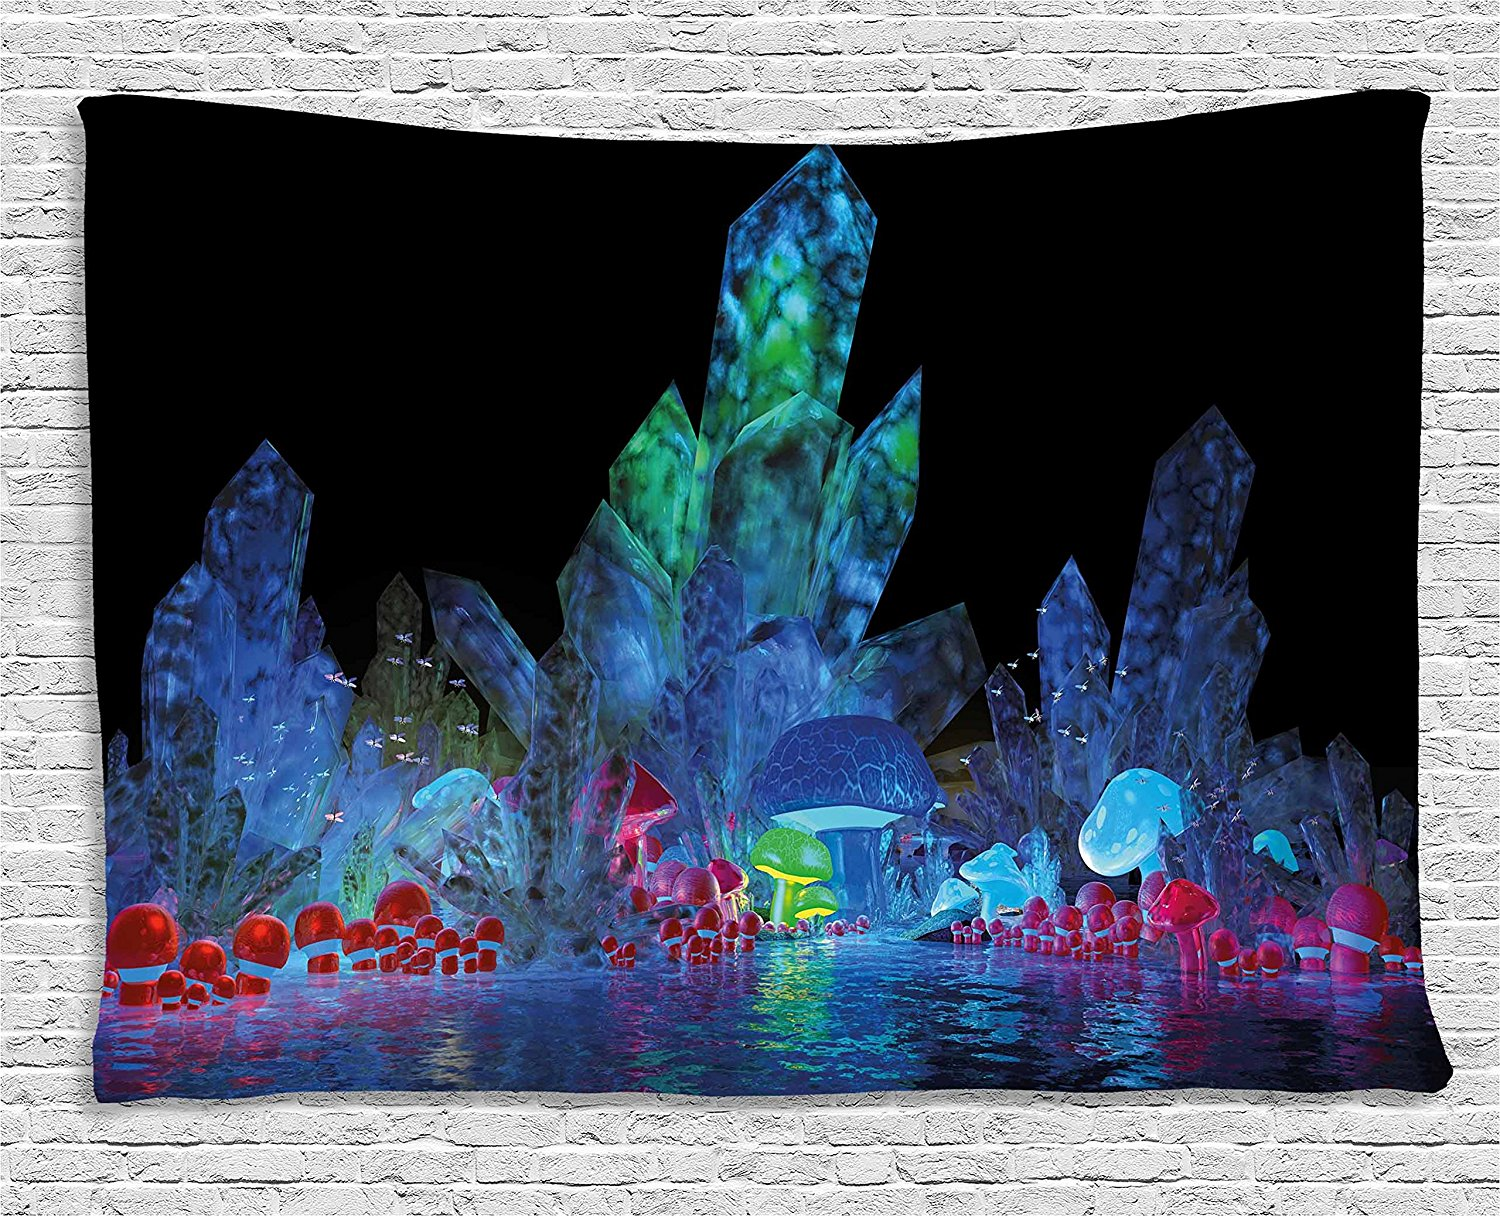 Psychedelic Tapestry, Magic Crystals Background Effects Mystic Nature Artistic with Neon Light Image, Wall Hanging Tapestry